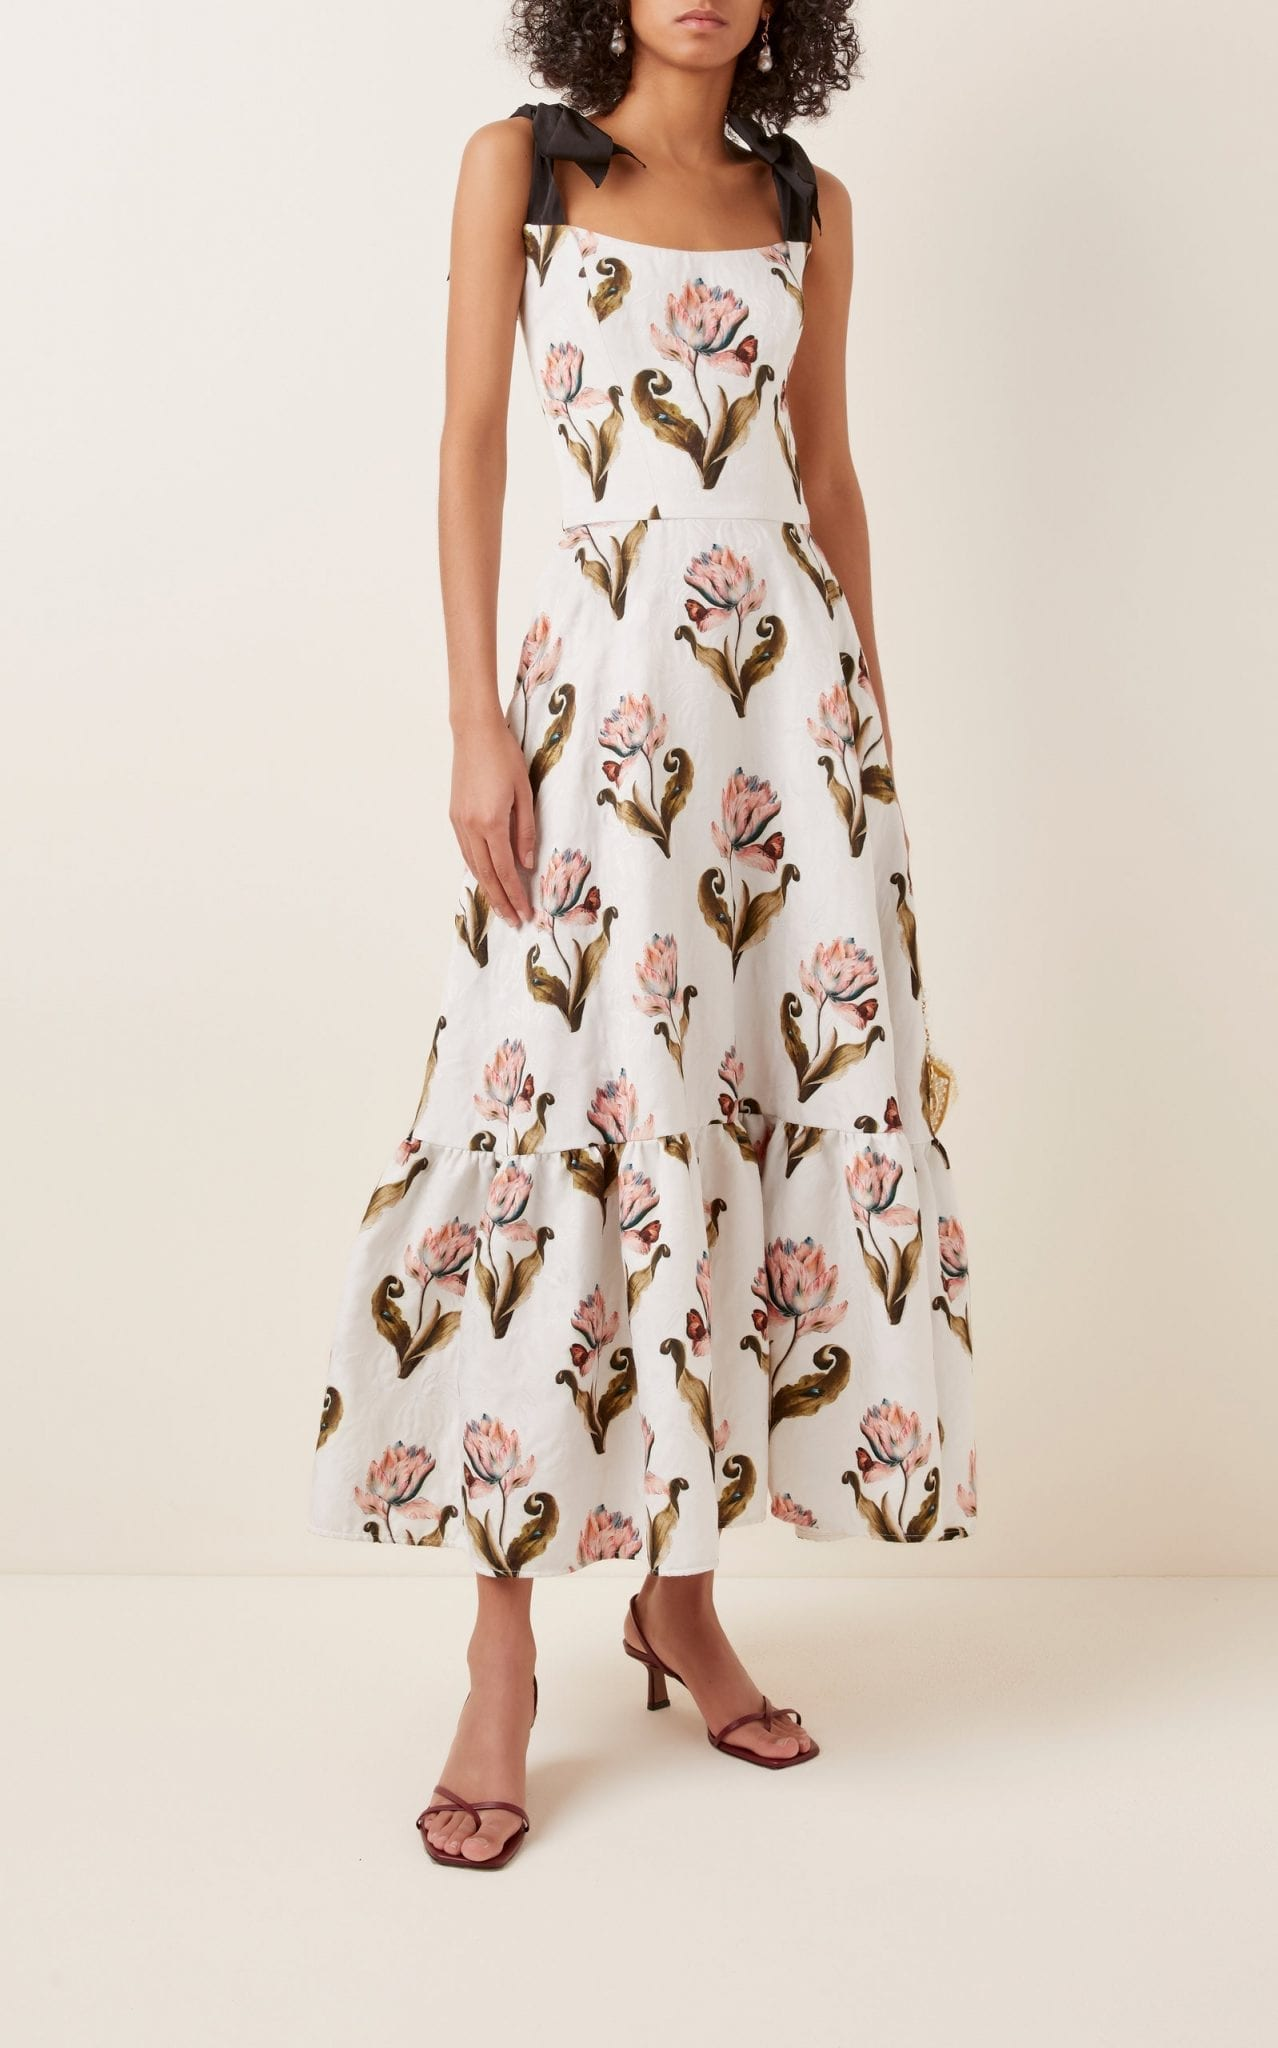 LENA HOSCHEK Daughter Of Nature Bow-Embellished Floral-Print Maxi Dress